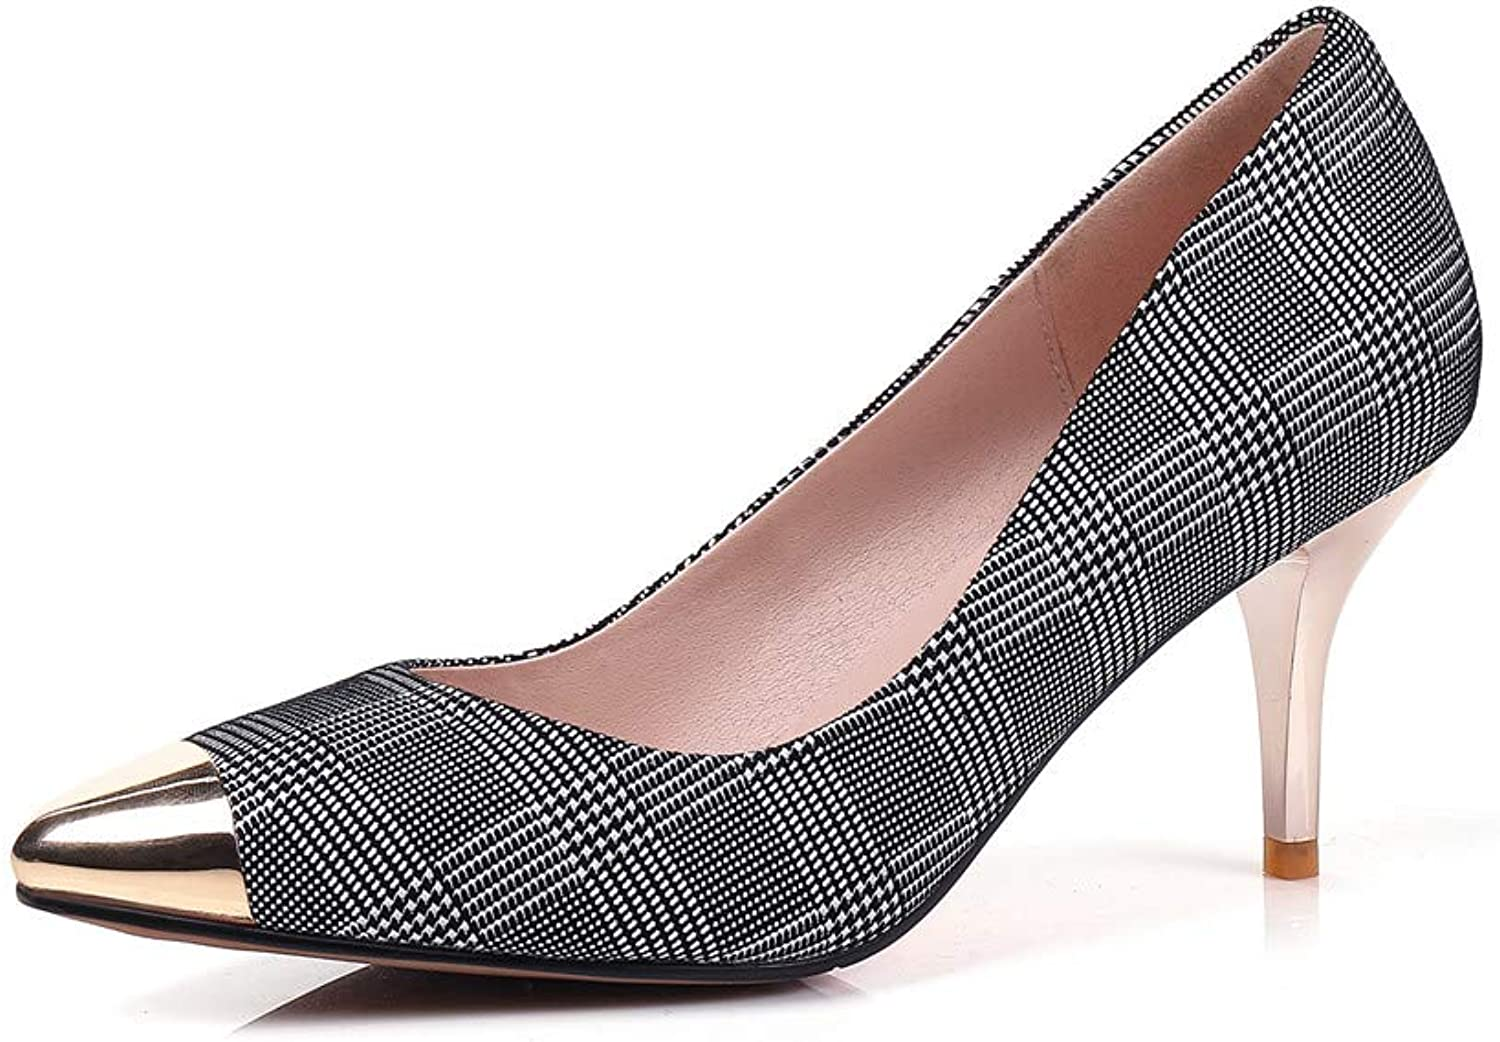 Nine Seven Women's Suede Leather Pointed Toe Sexy Stiletto Heel Handmade Glossy and Comfortable May Jane Pumps shoes